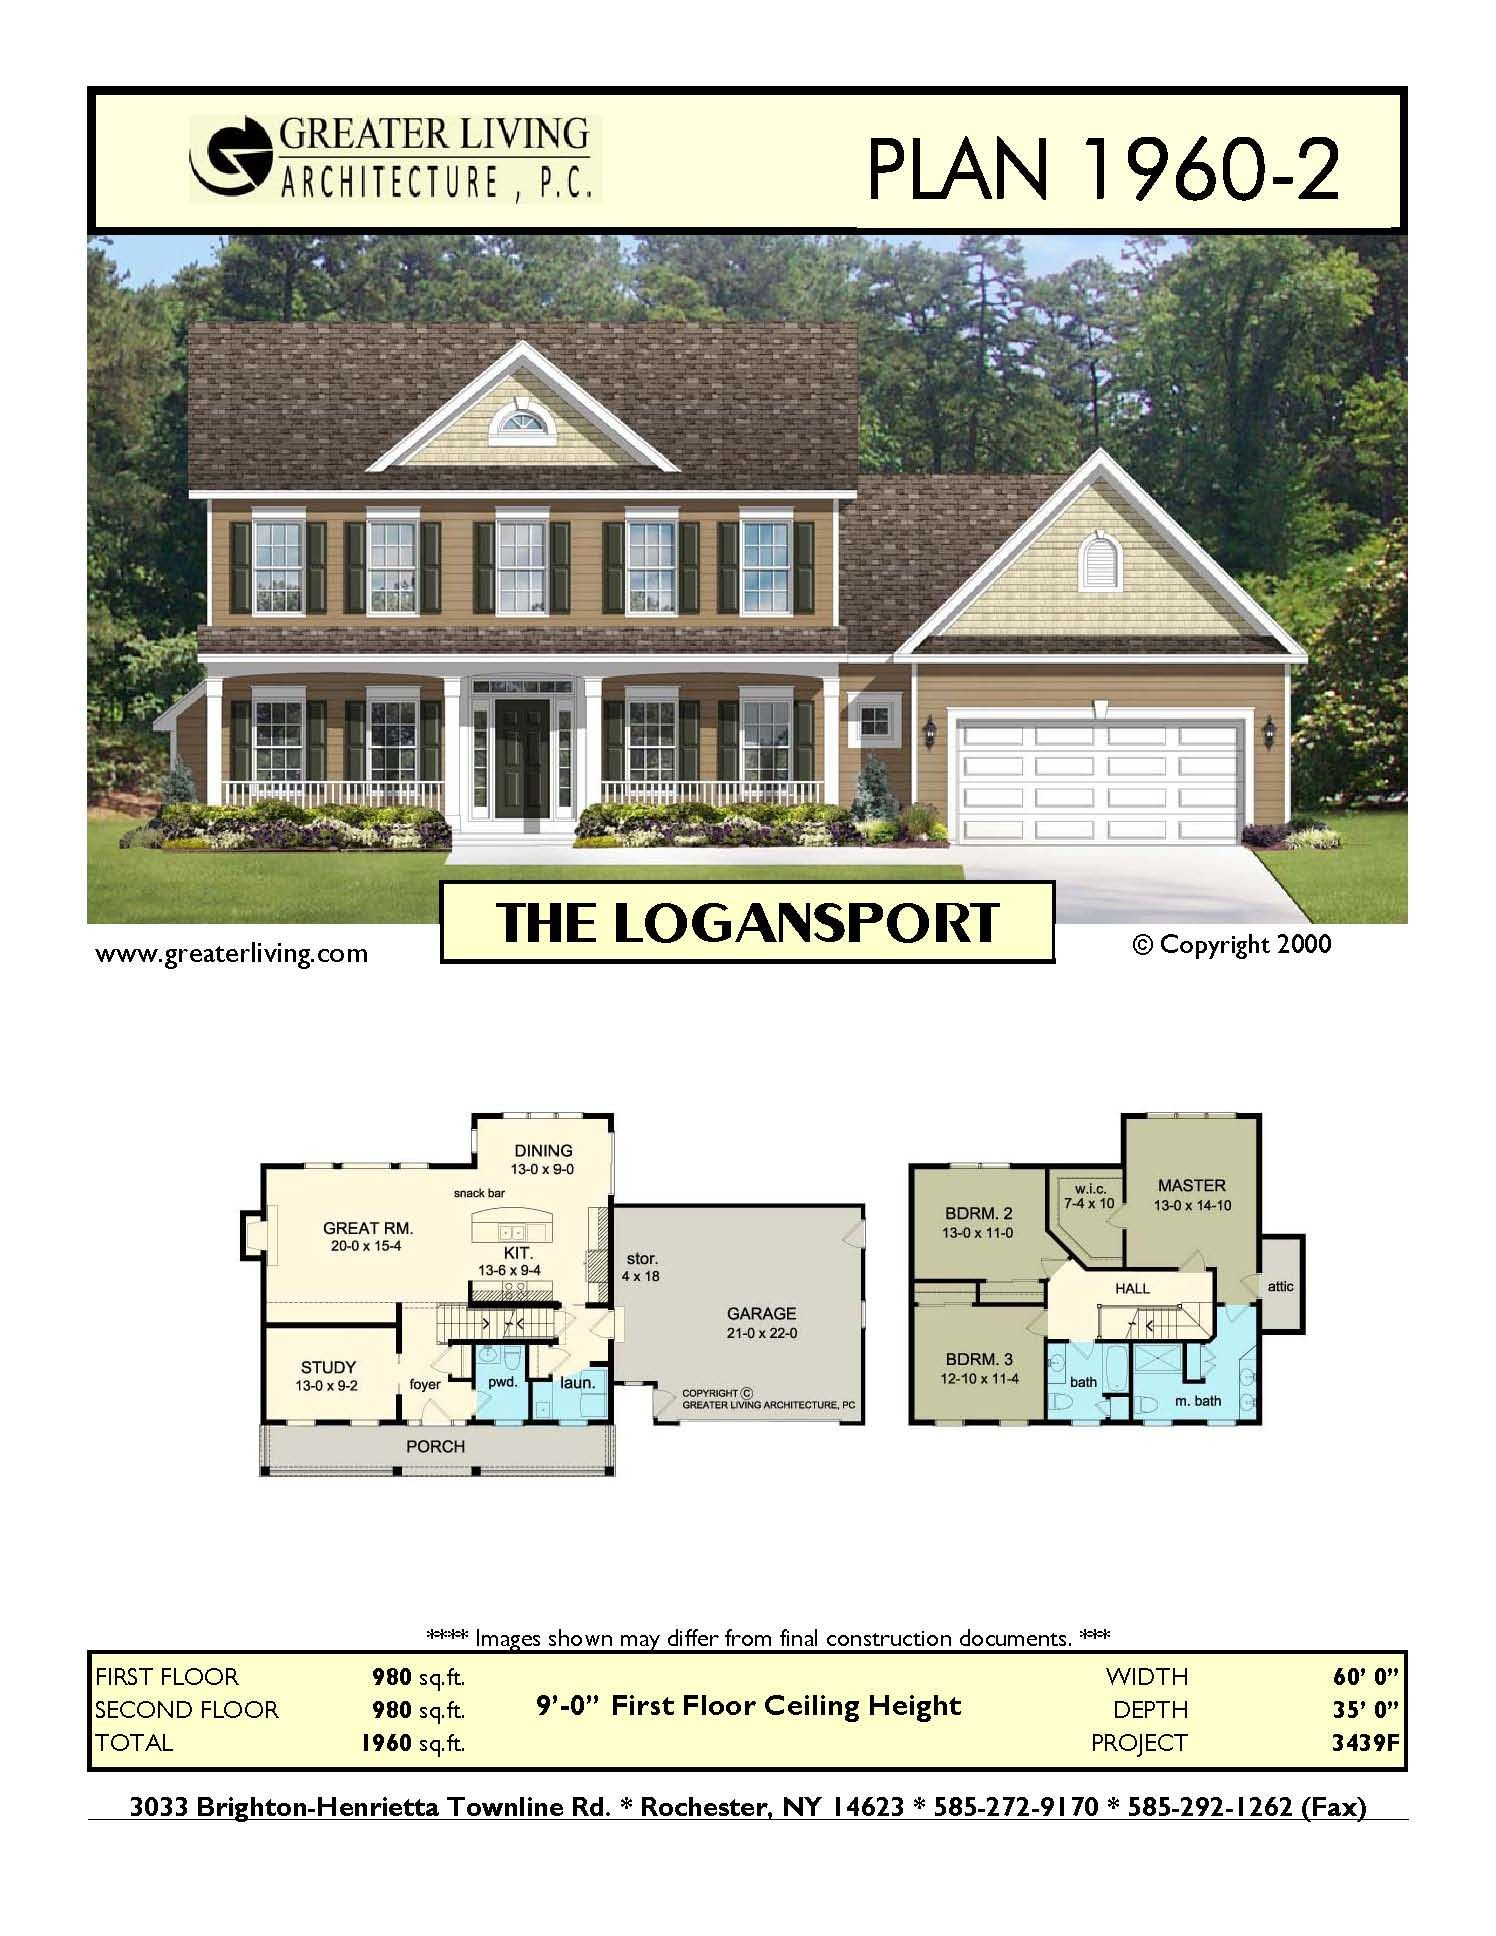 Plan 1960-2: THE LOGANSPORT | floor plans and layout / home design ...